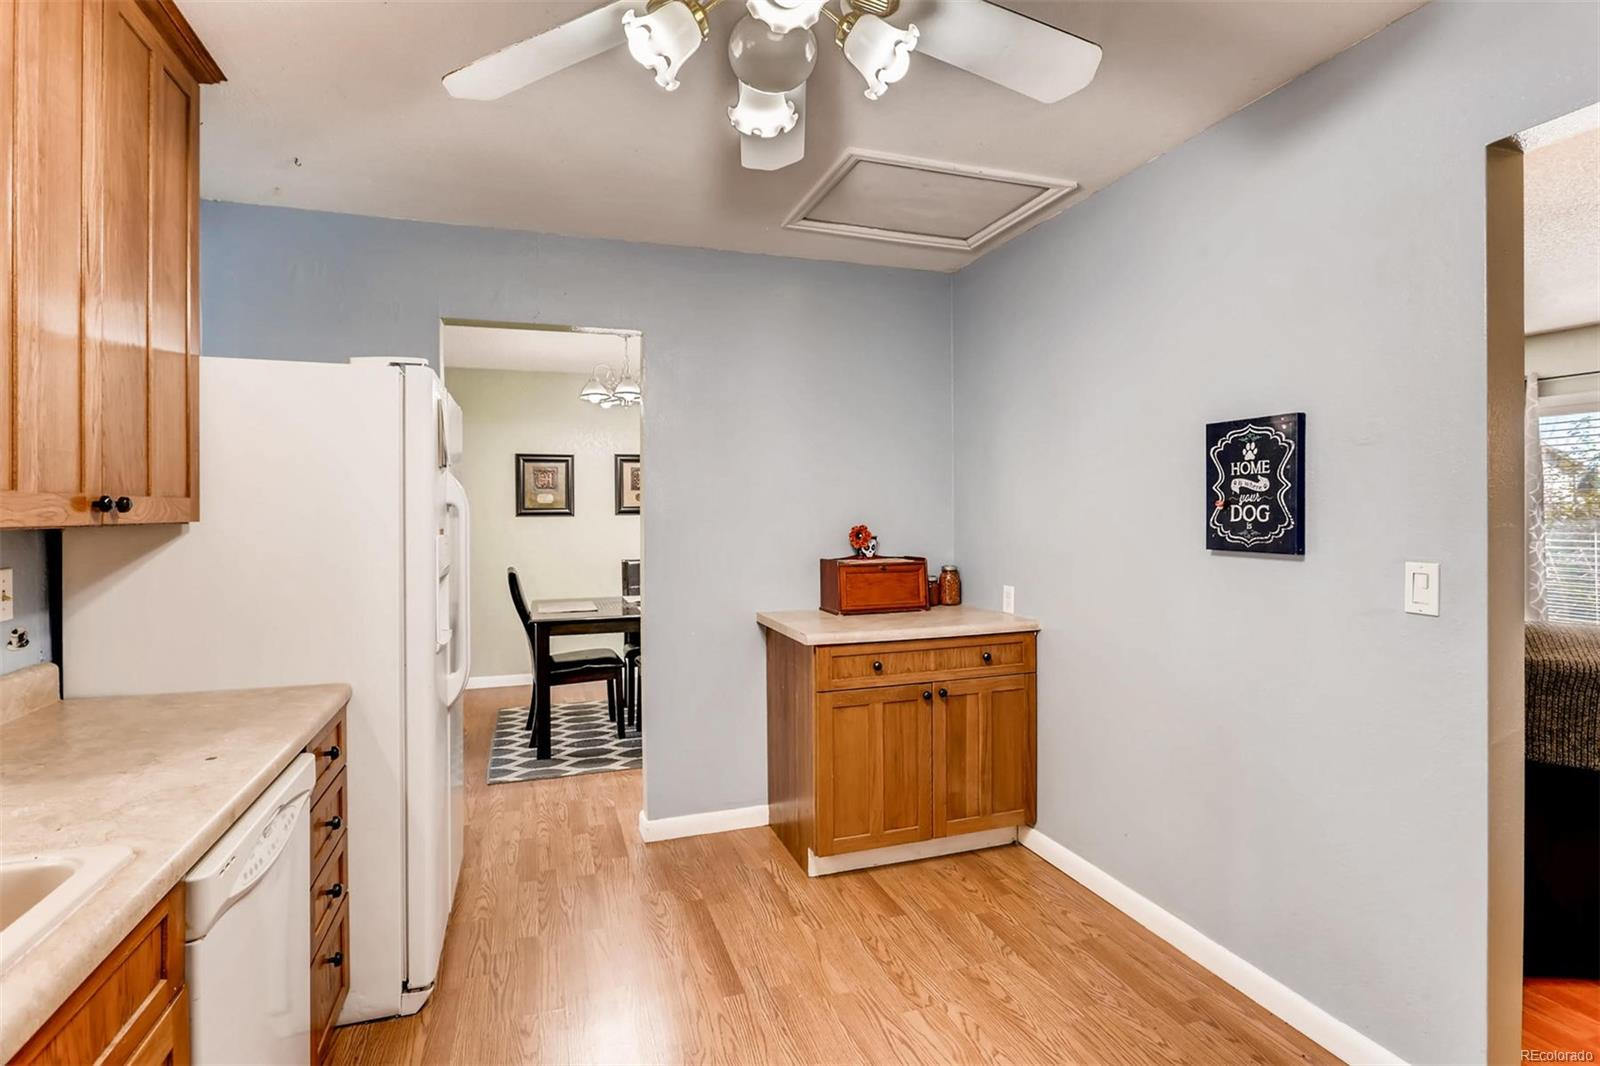 This ample sized kitchen has room for a small breakfast table.